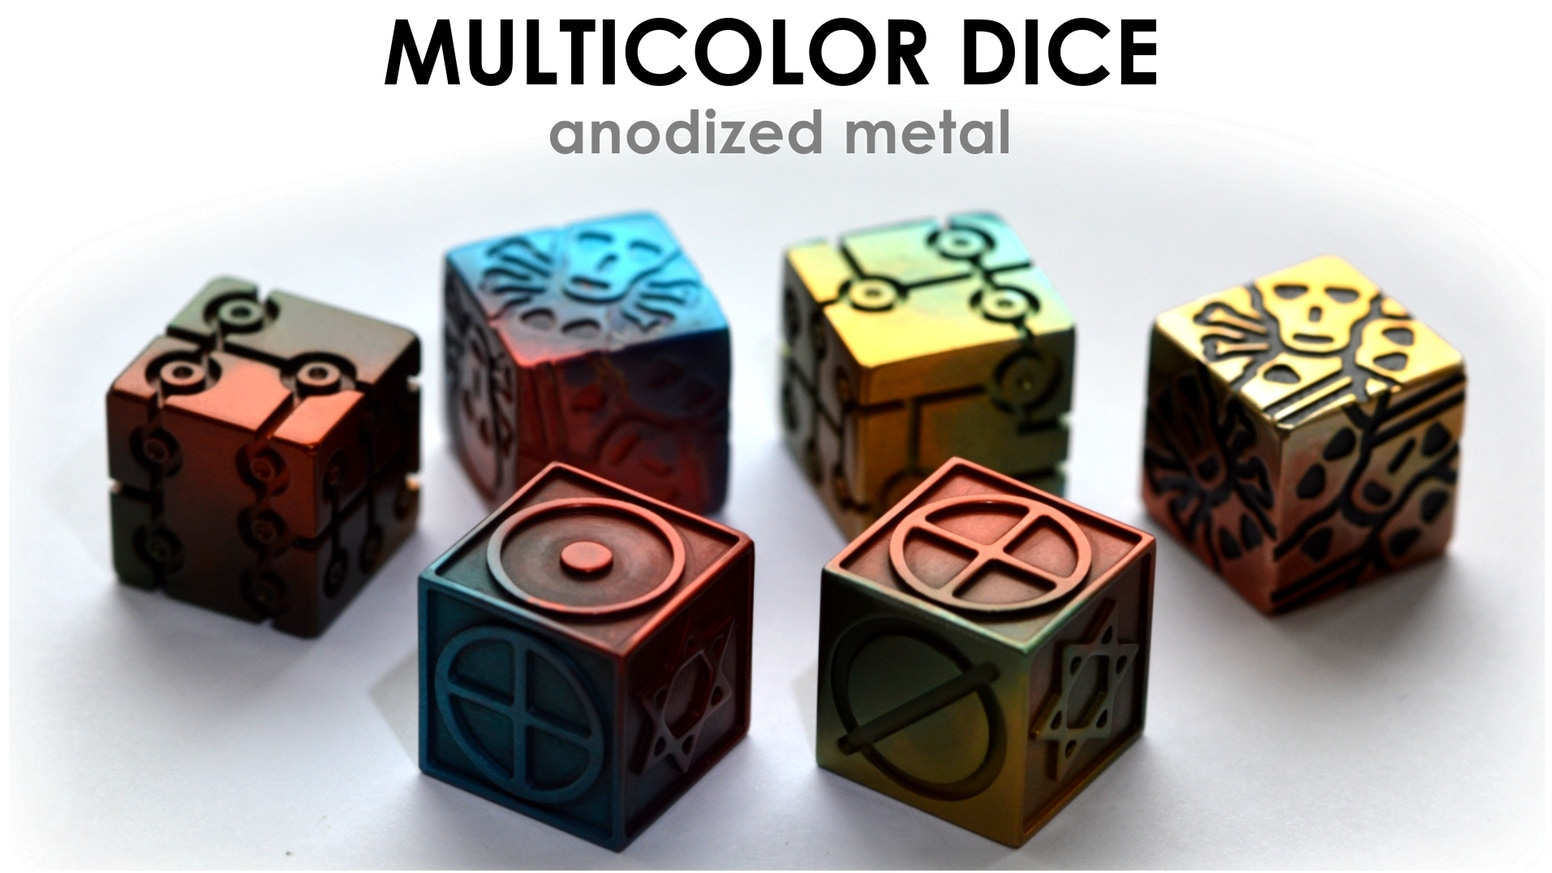 Unique Metal Design for Board Games and Collectors